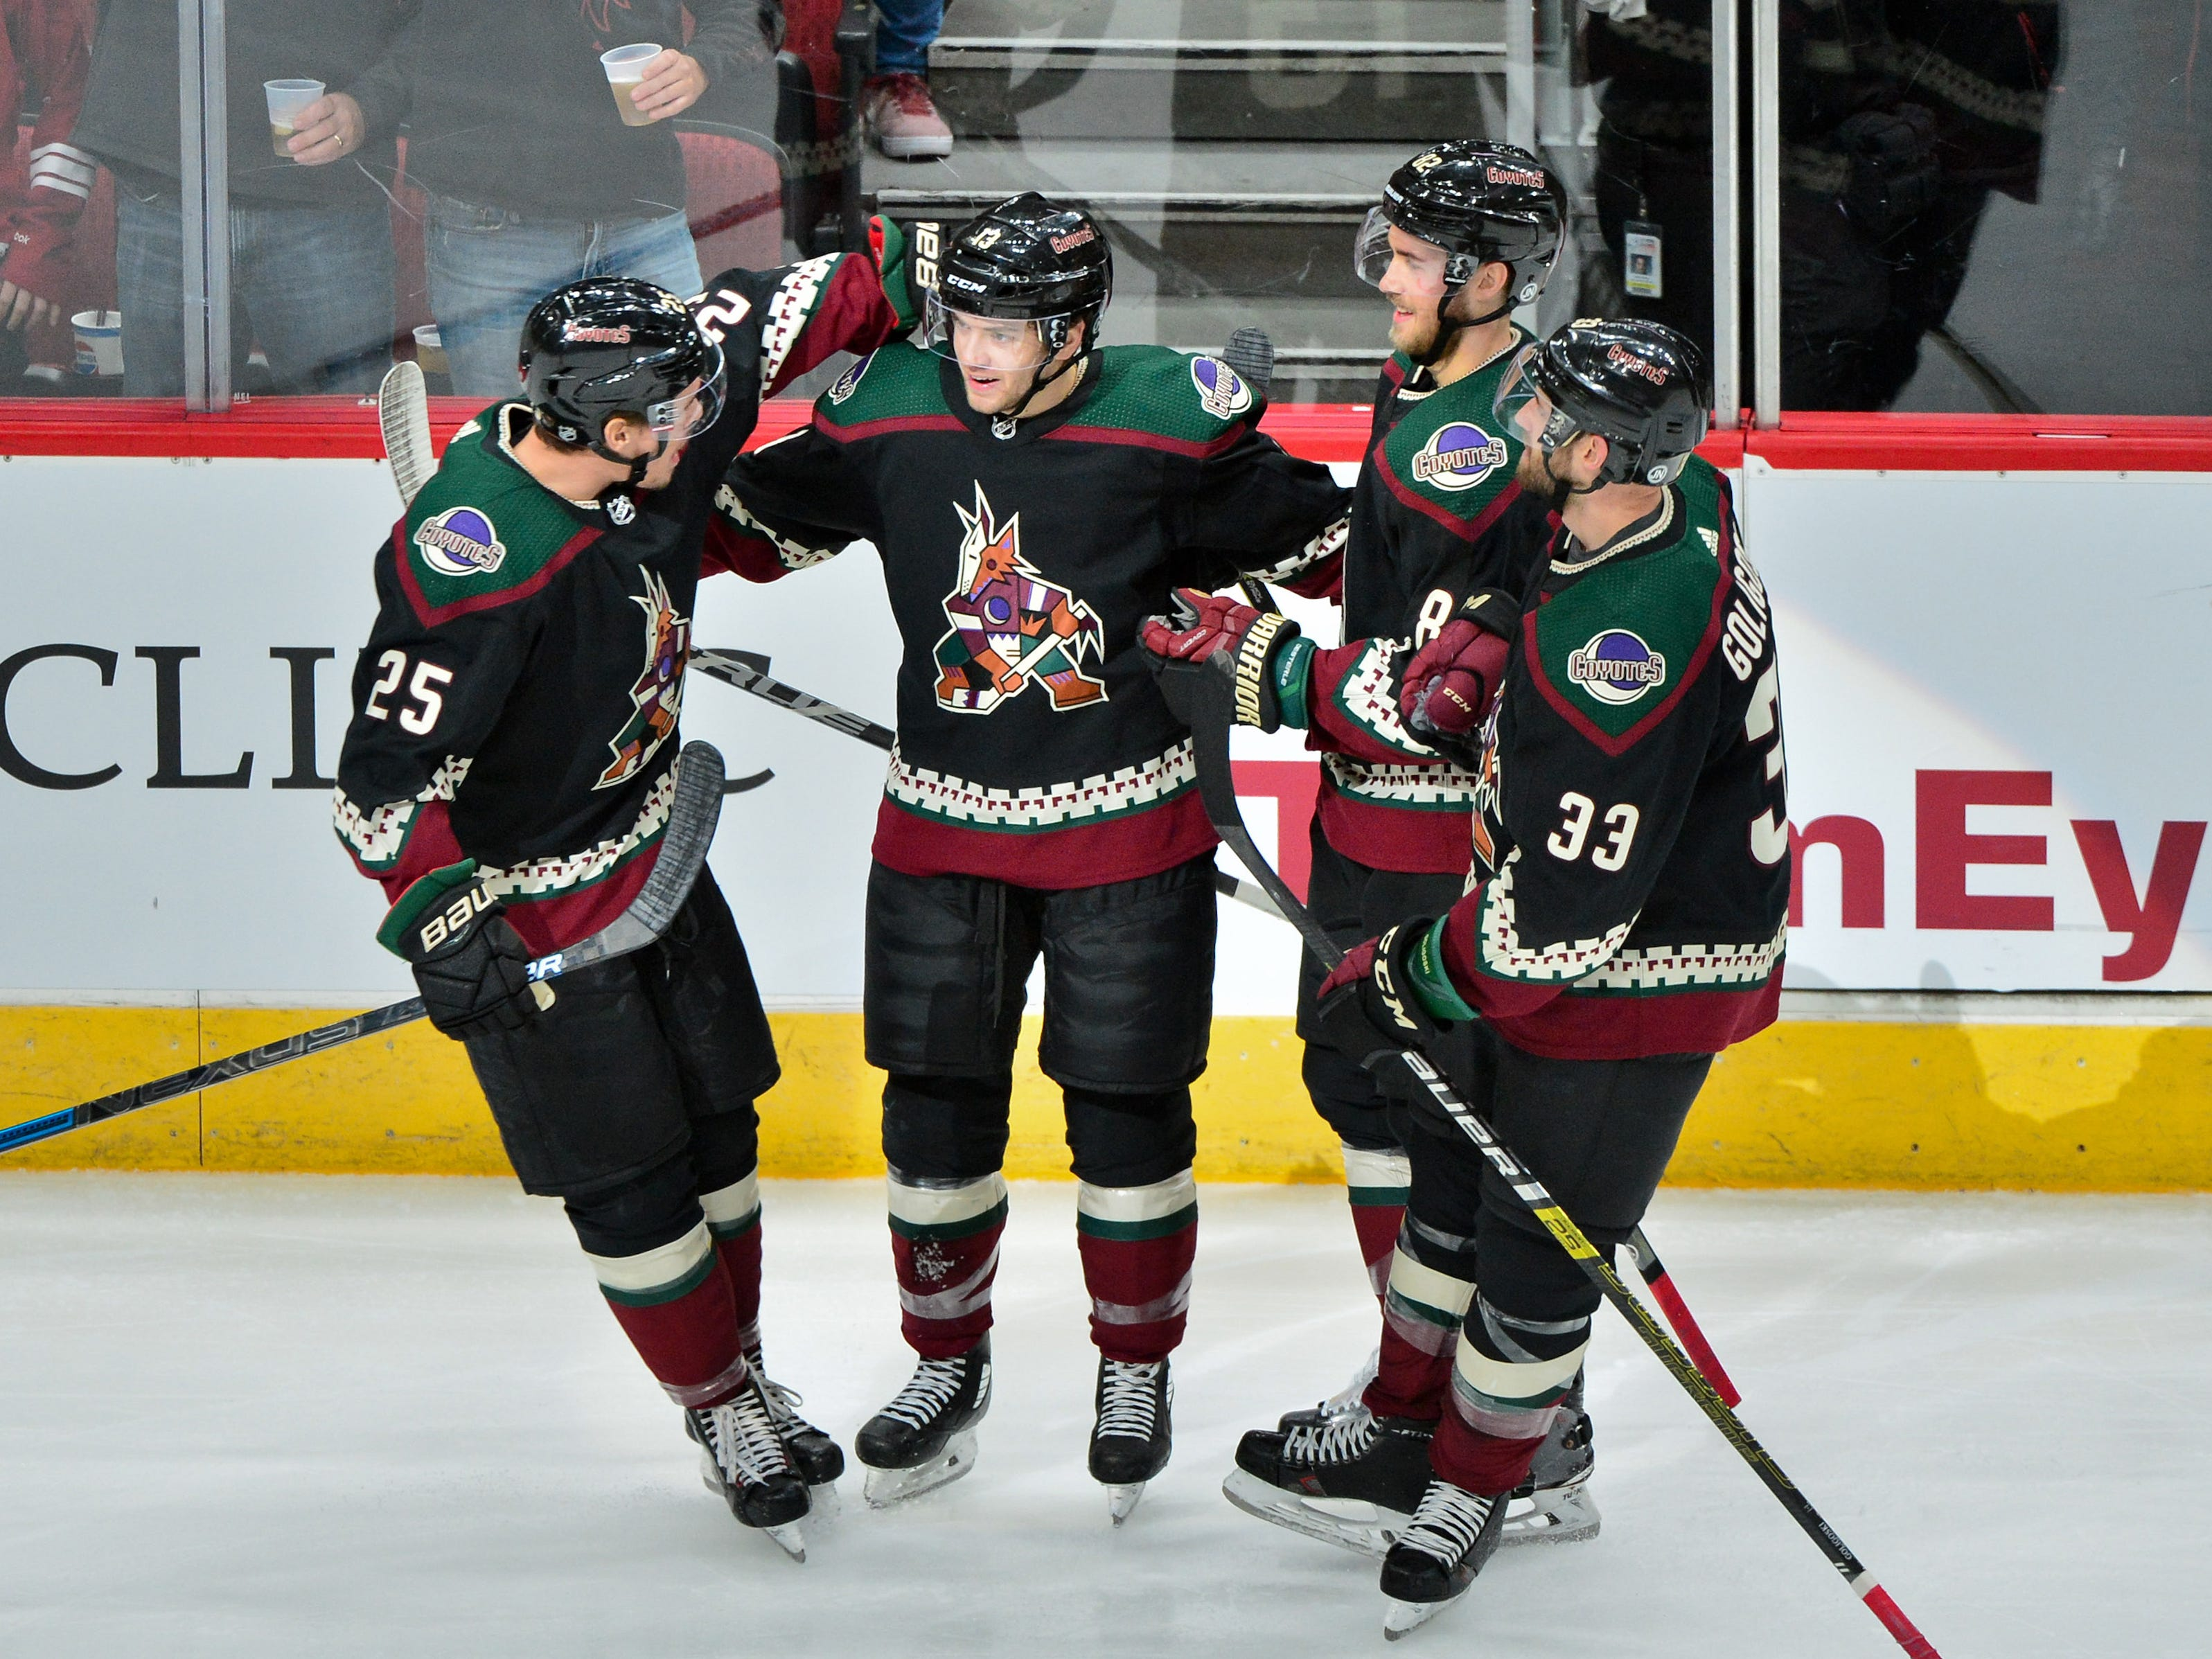 Oct 27, 2018; Glendale, AZ, USA; Arizona Coyotes center Vinnie Hinostroza (13) celebrates with center Nick Cousins (25), defenseman Alex Goligoski (33) and defenseman Jordan Oesterle (82) after scoring a goal in the second period against the Tampa Bay Lightning at Gila River Arena. Mandatory Credit: Matt Kartozian-USA TODAY Sports